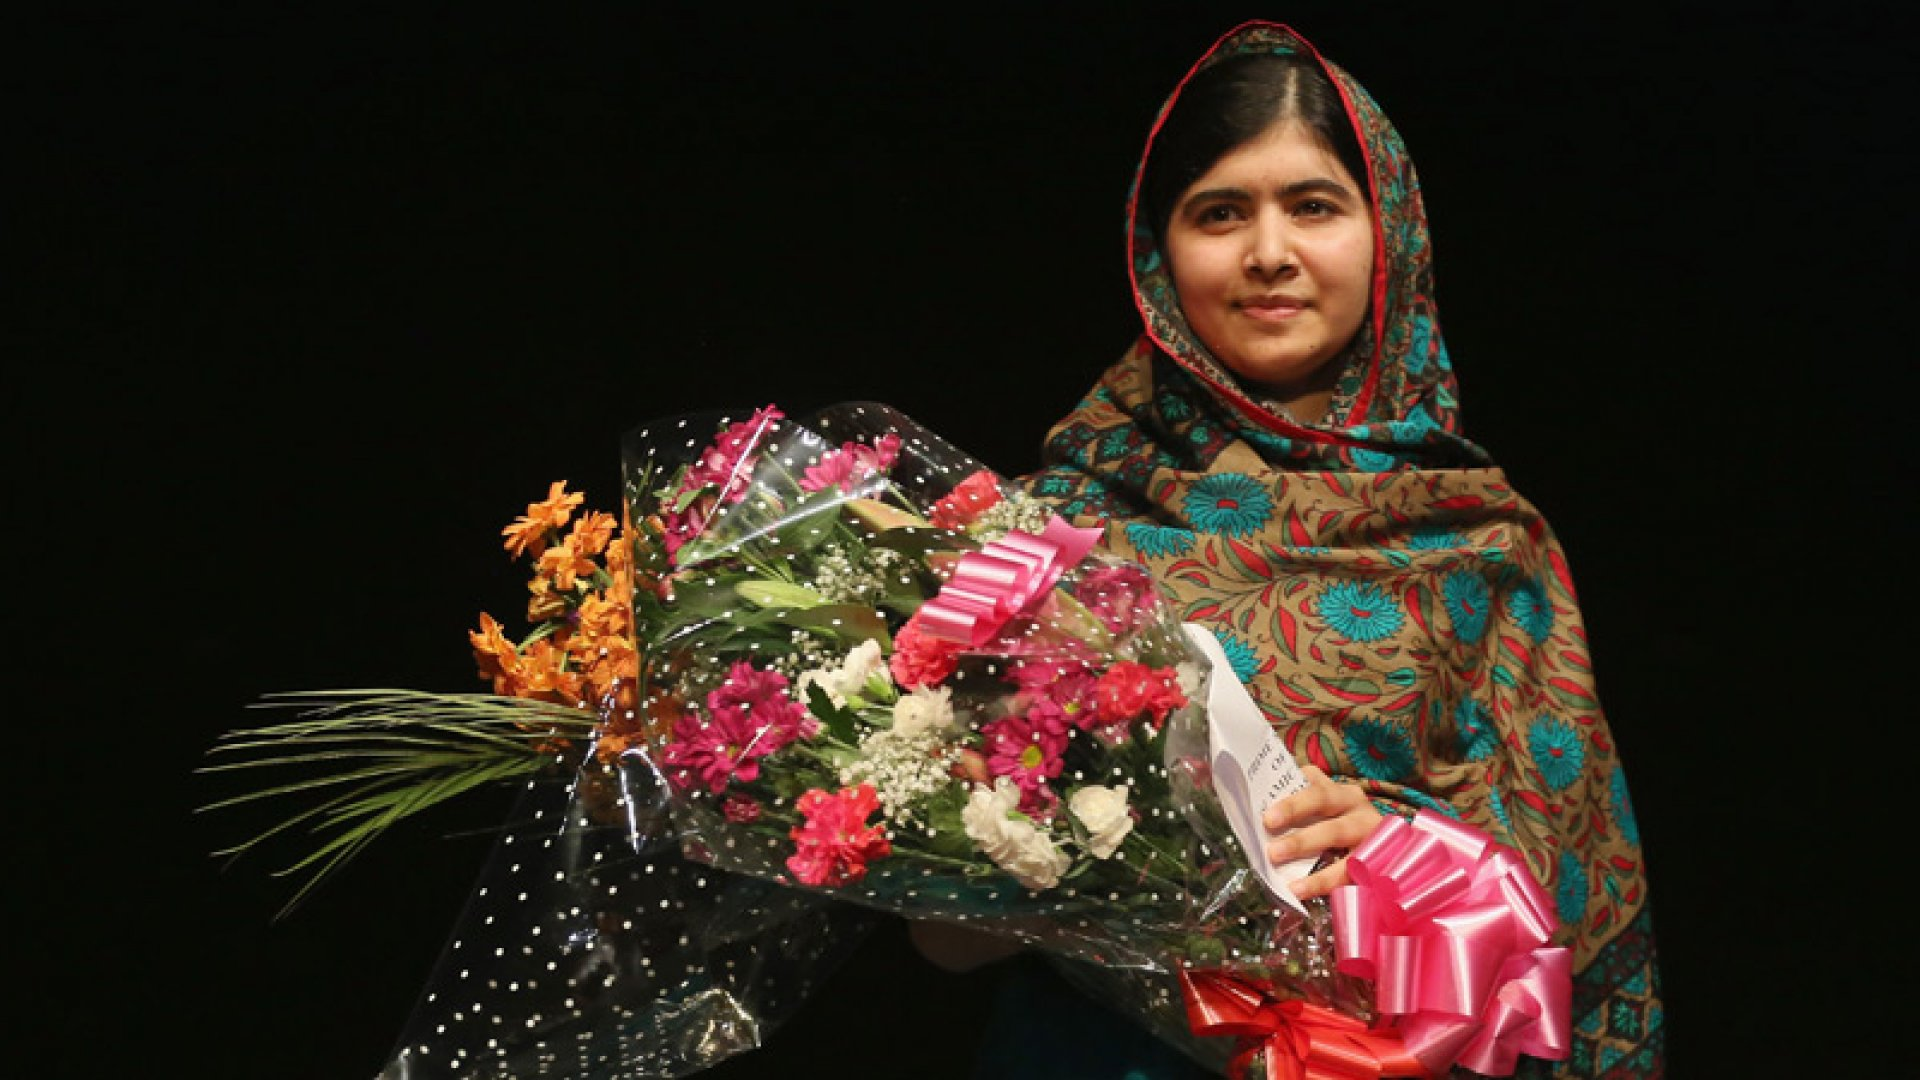 5 Inspiring Quotes From Nobel-Winner Malala Yousafzai